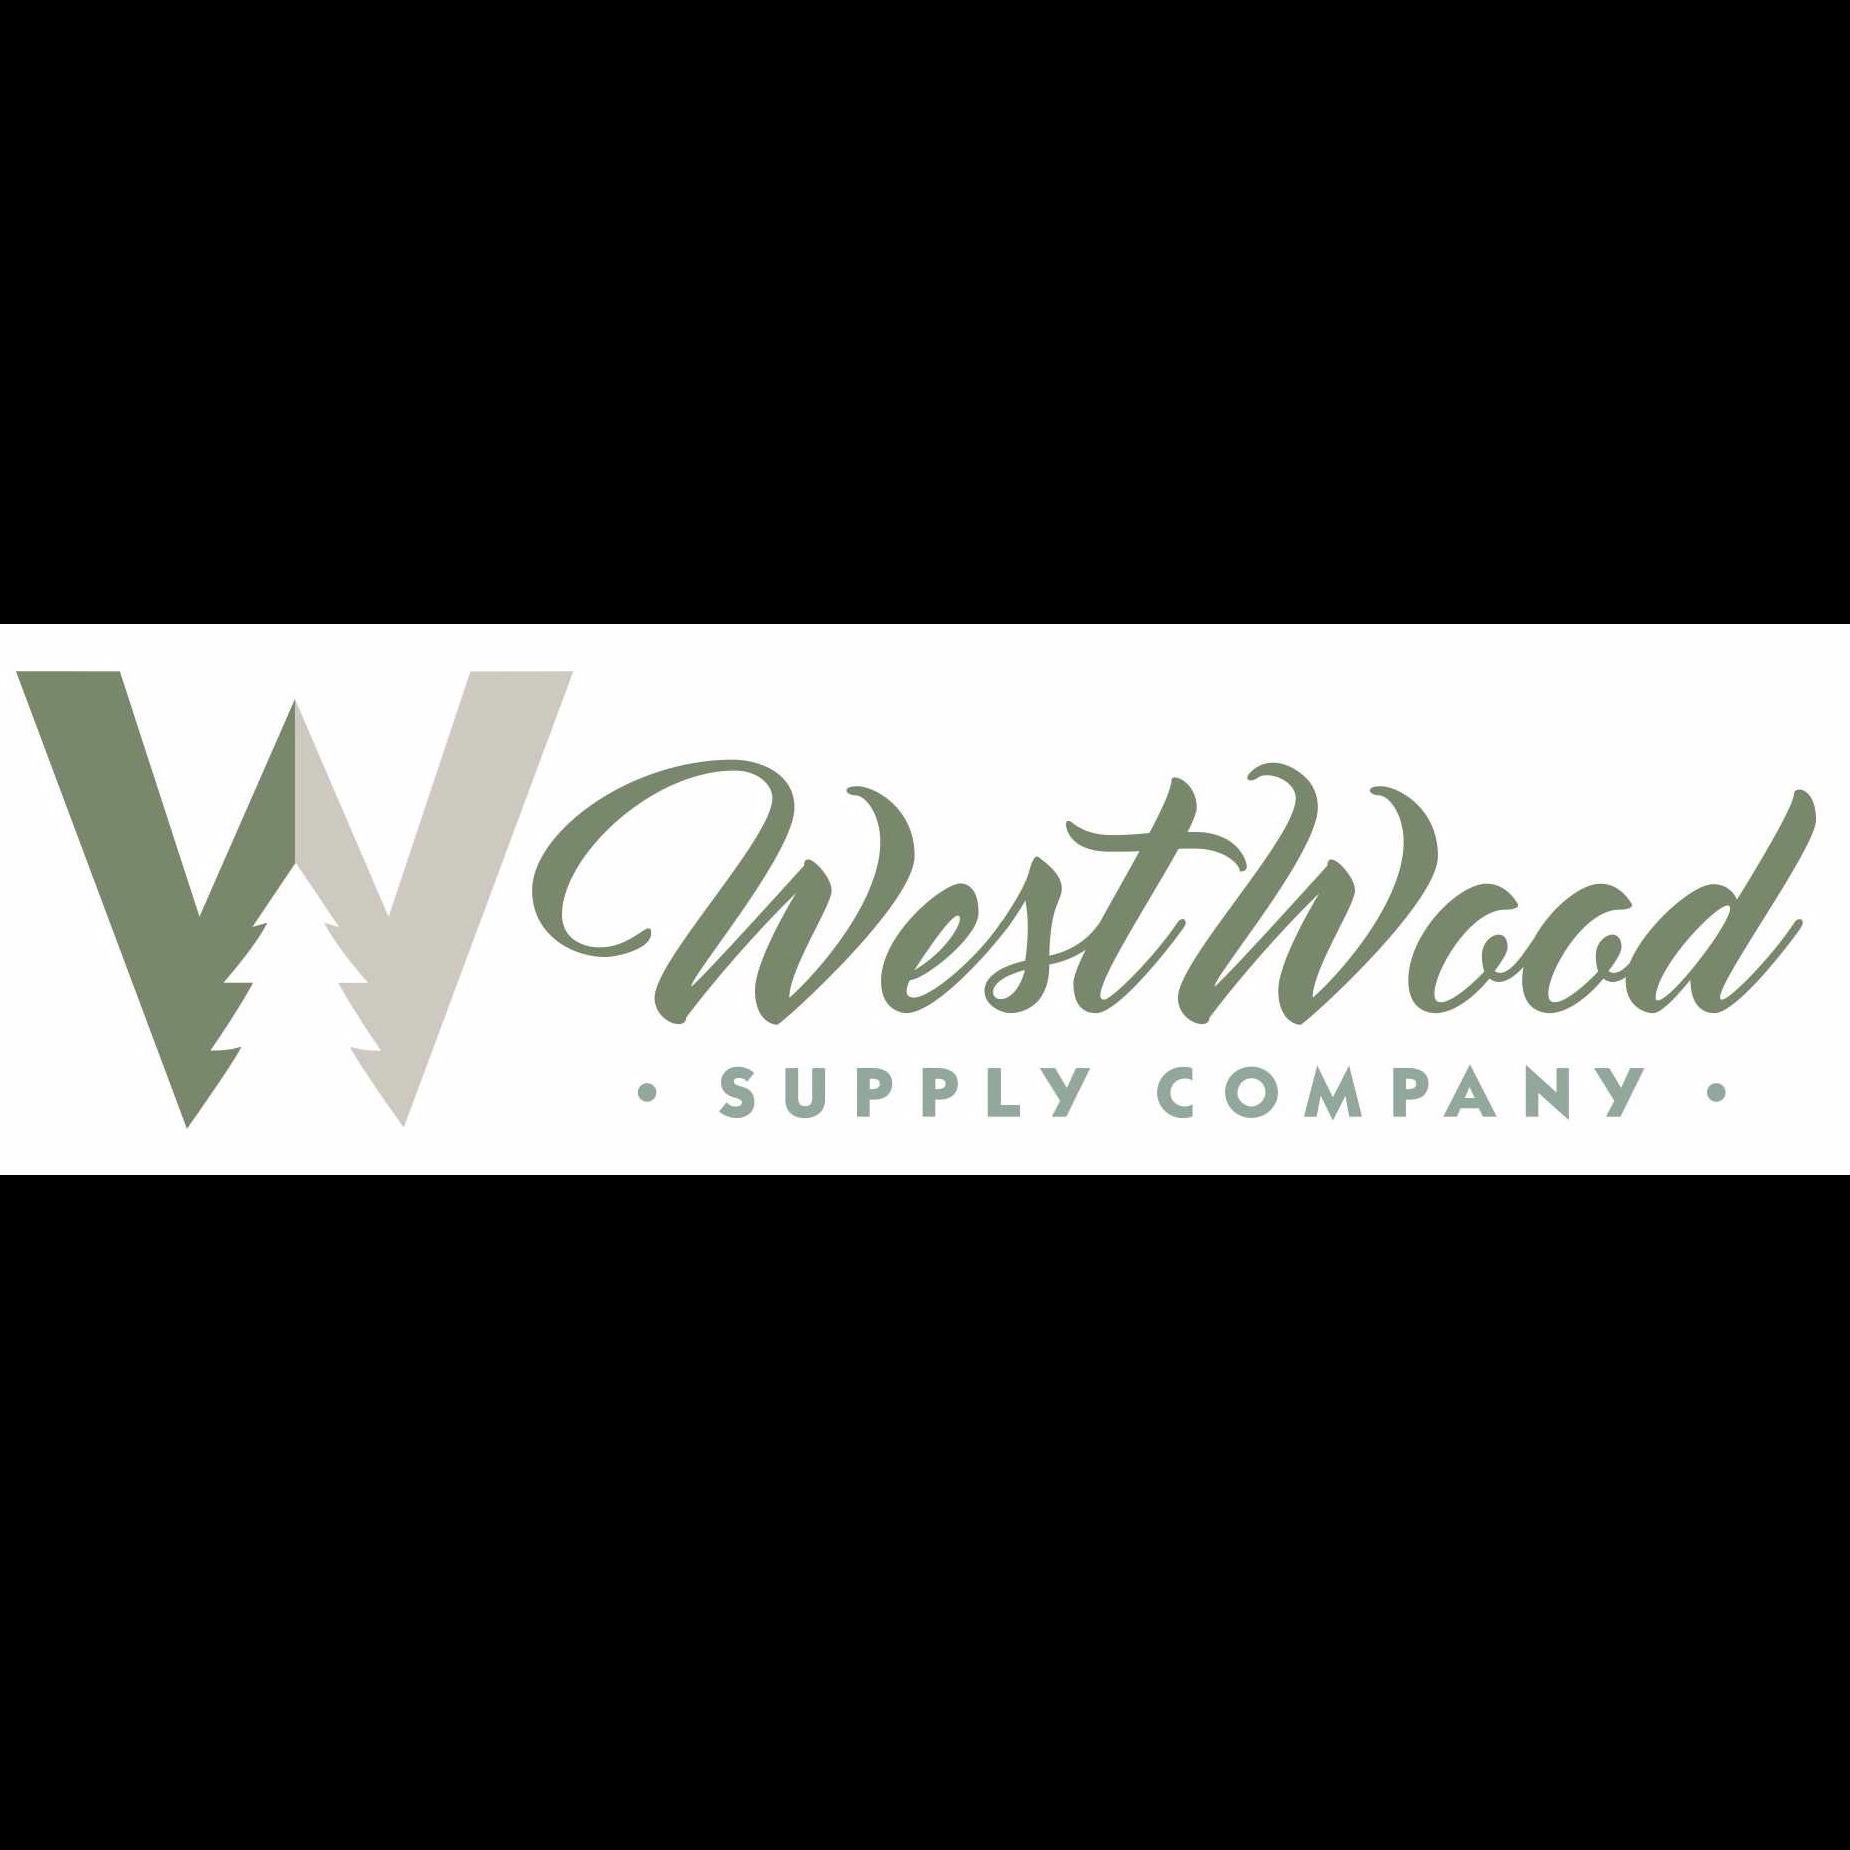 WestWood Supply Company